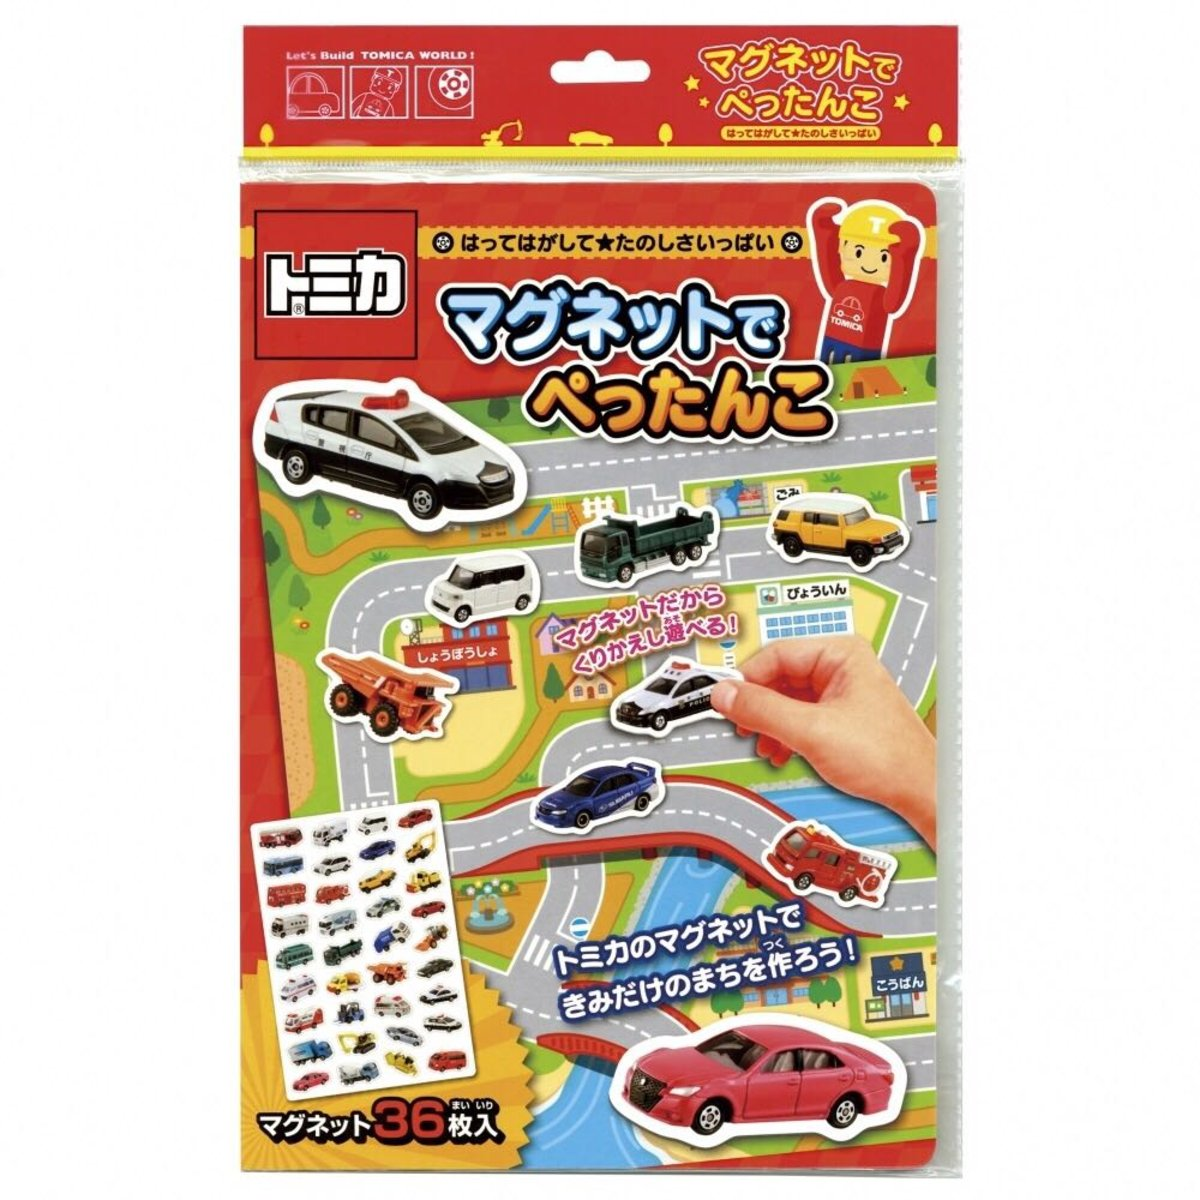 【Parallel Goods】Kid's Magnet Post Book(36pcs) - Tomica Car Shape (4973107160600)